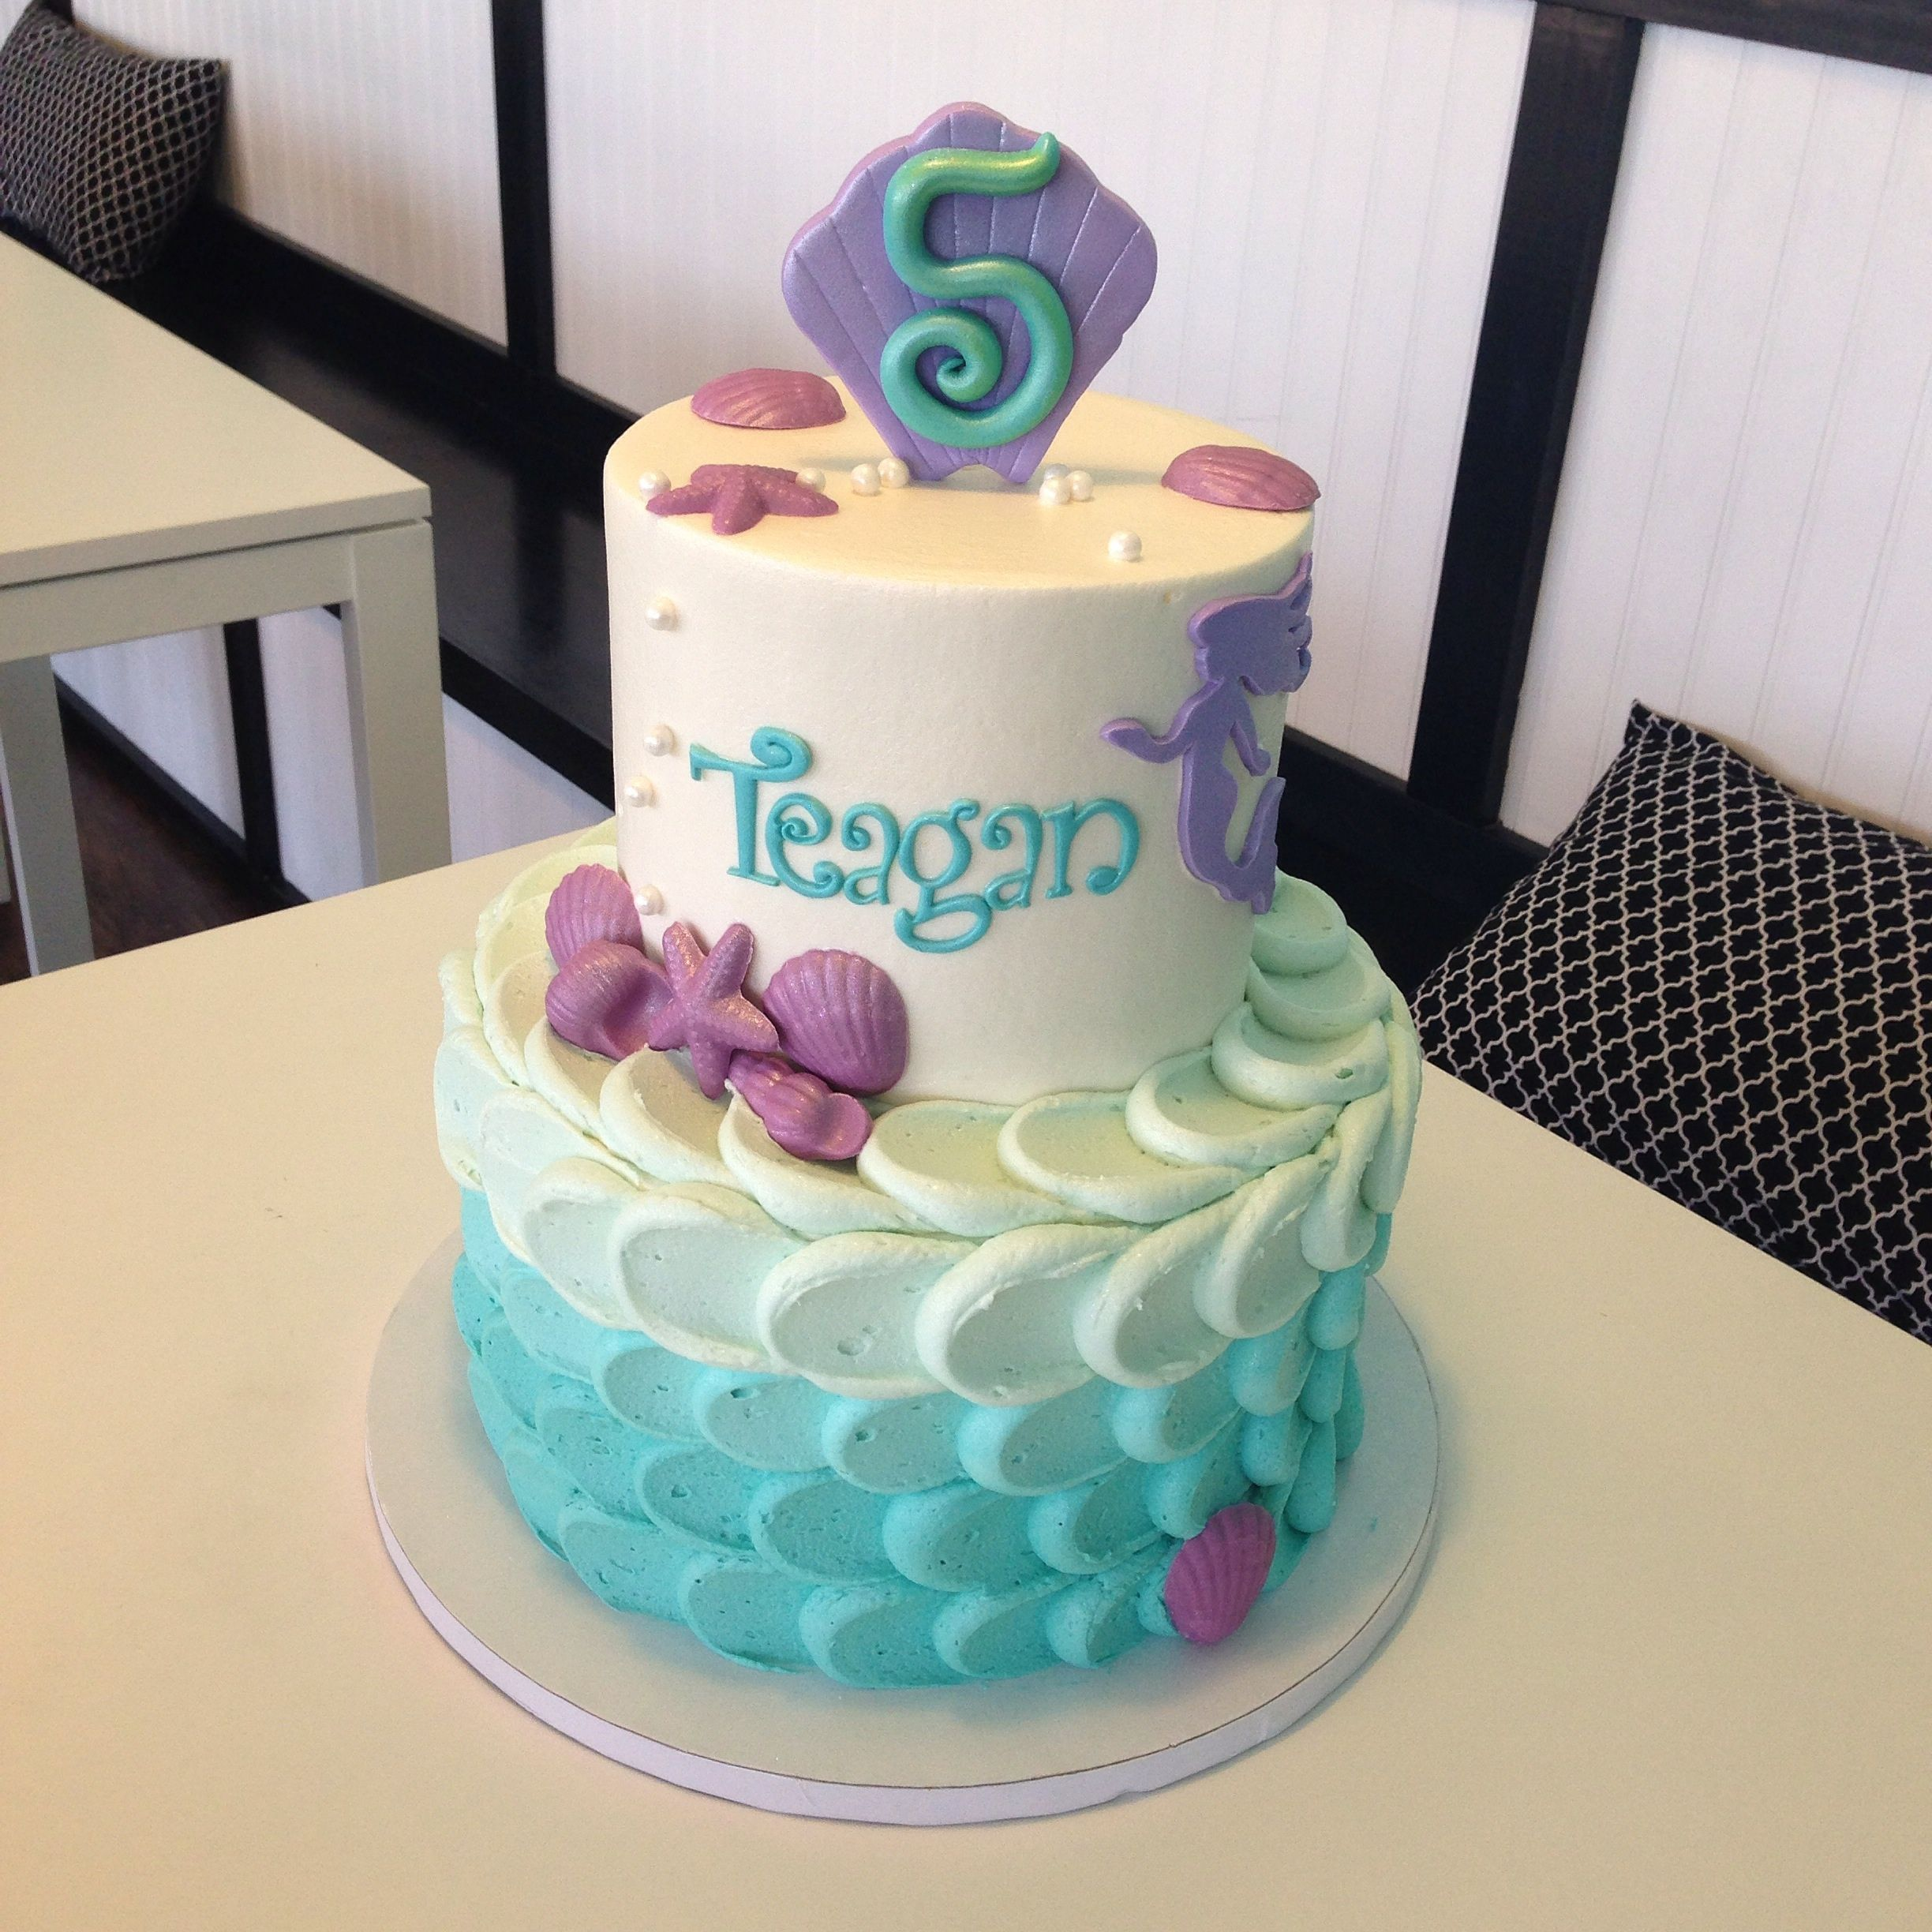 Ombr Mermaid Buttercream Cake The Cake Shop by ButterSweet